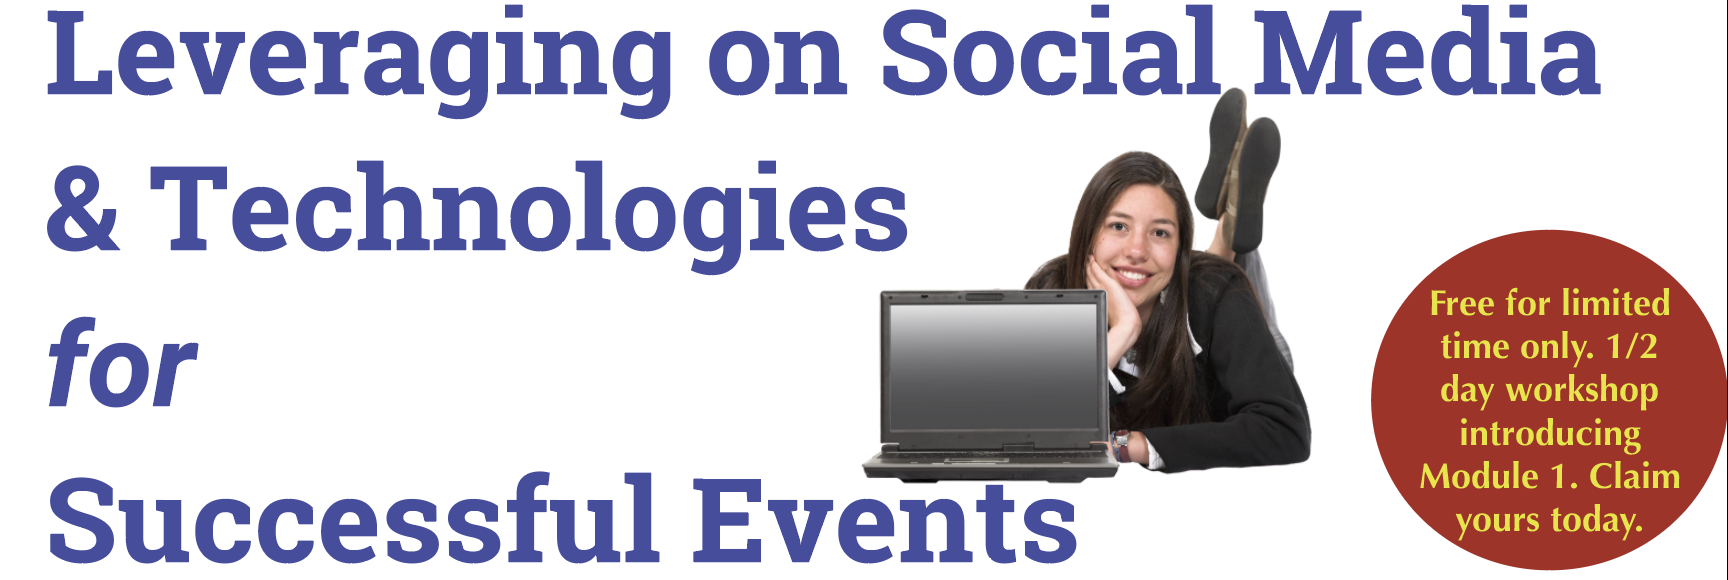 Leveraging on social media & technologies for successful events